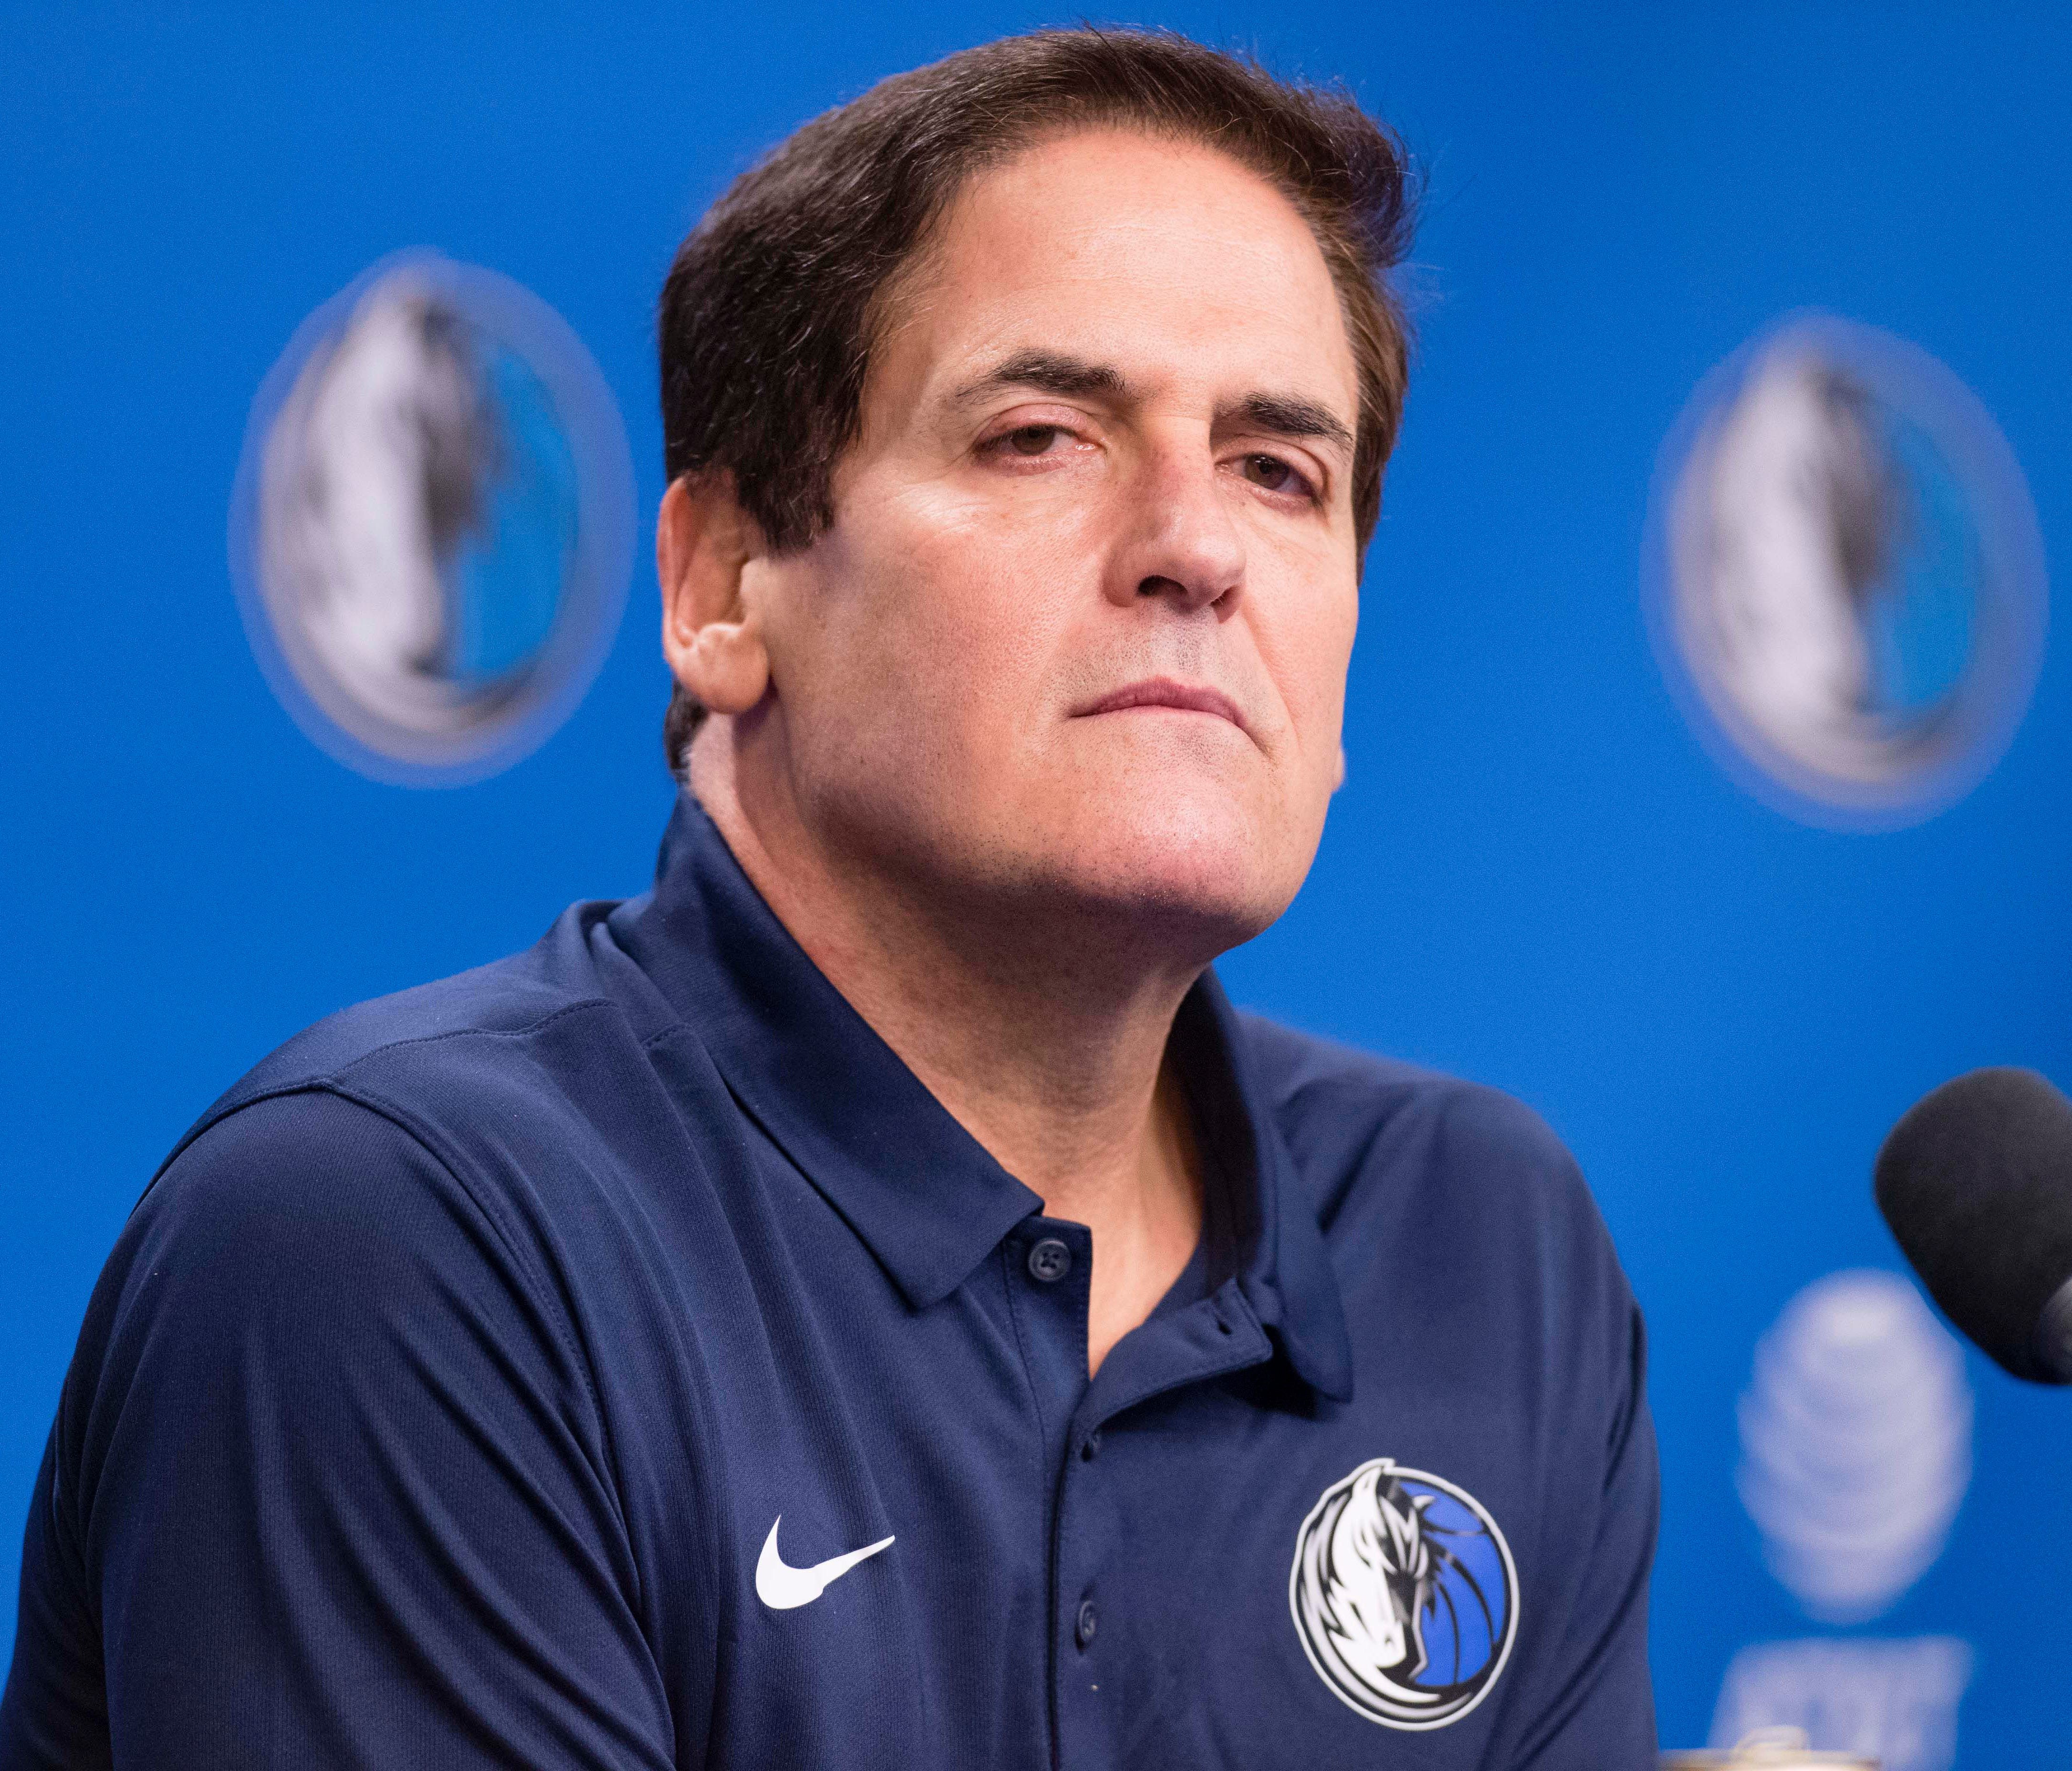 Mark Cuban's Mavericks are under investigation for having a history of inappropriate workplace behavior.